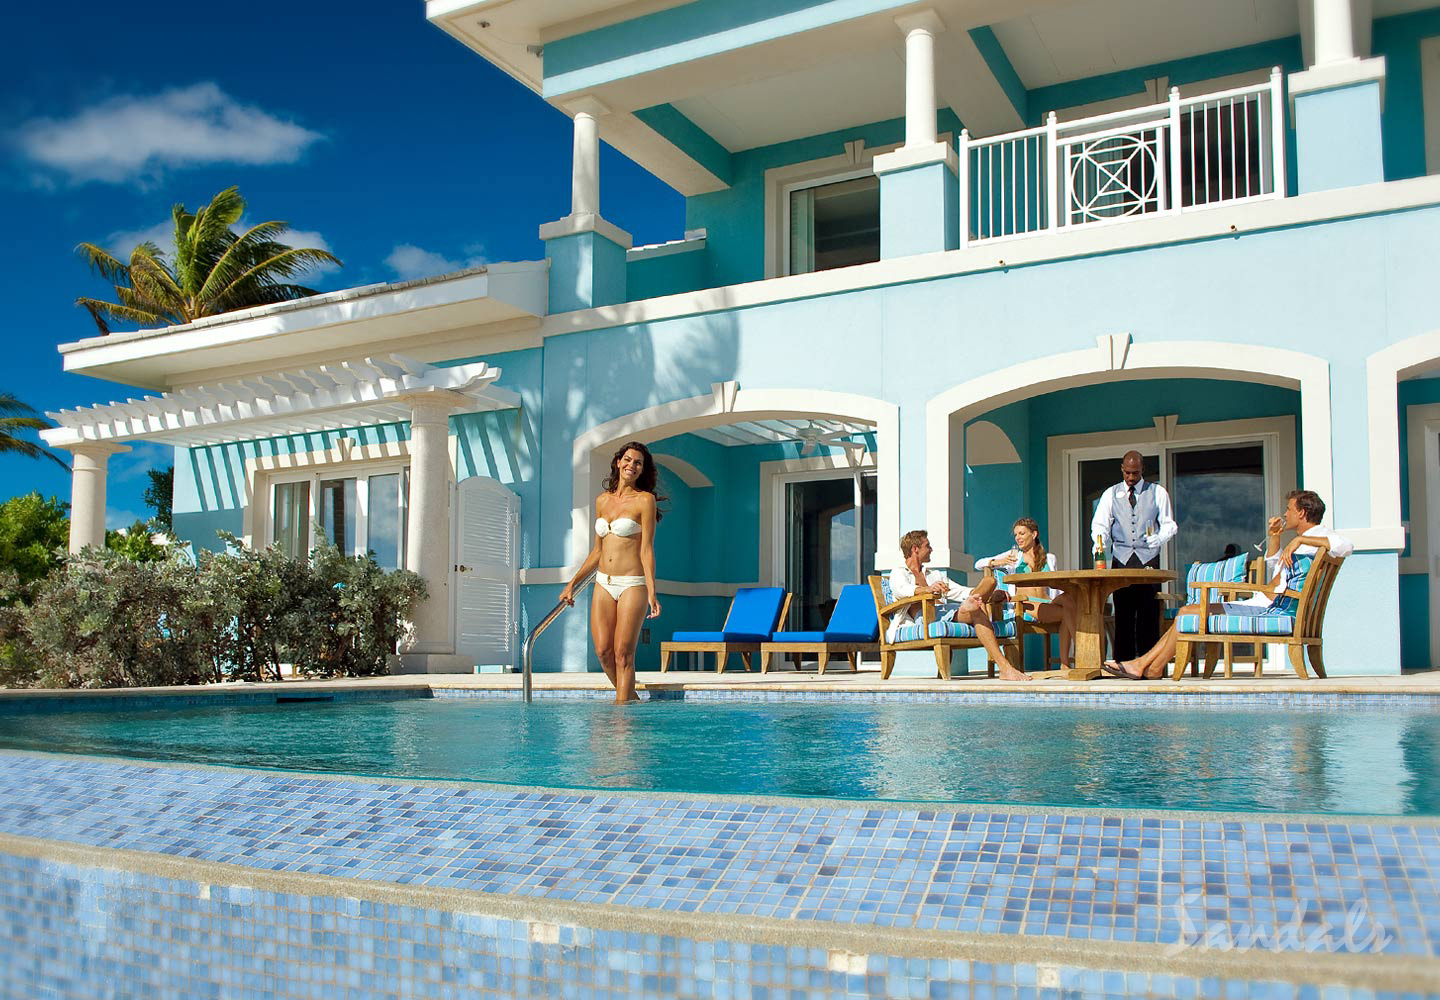 Travel Agency All-Inclusive Resort Sandals Emerald Bay 029